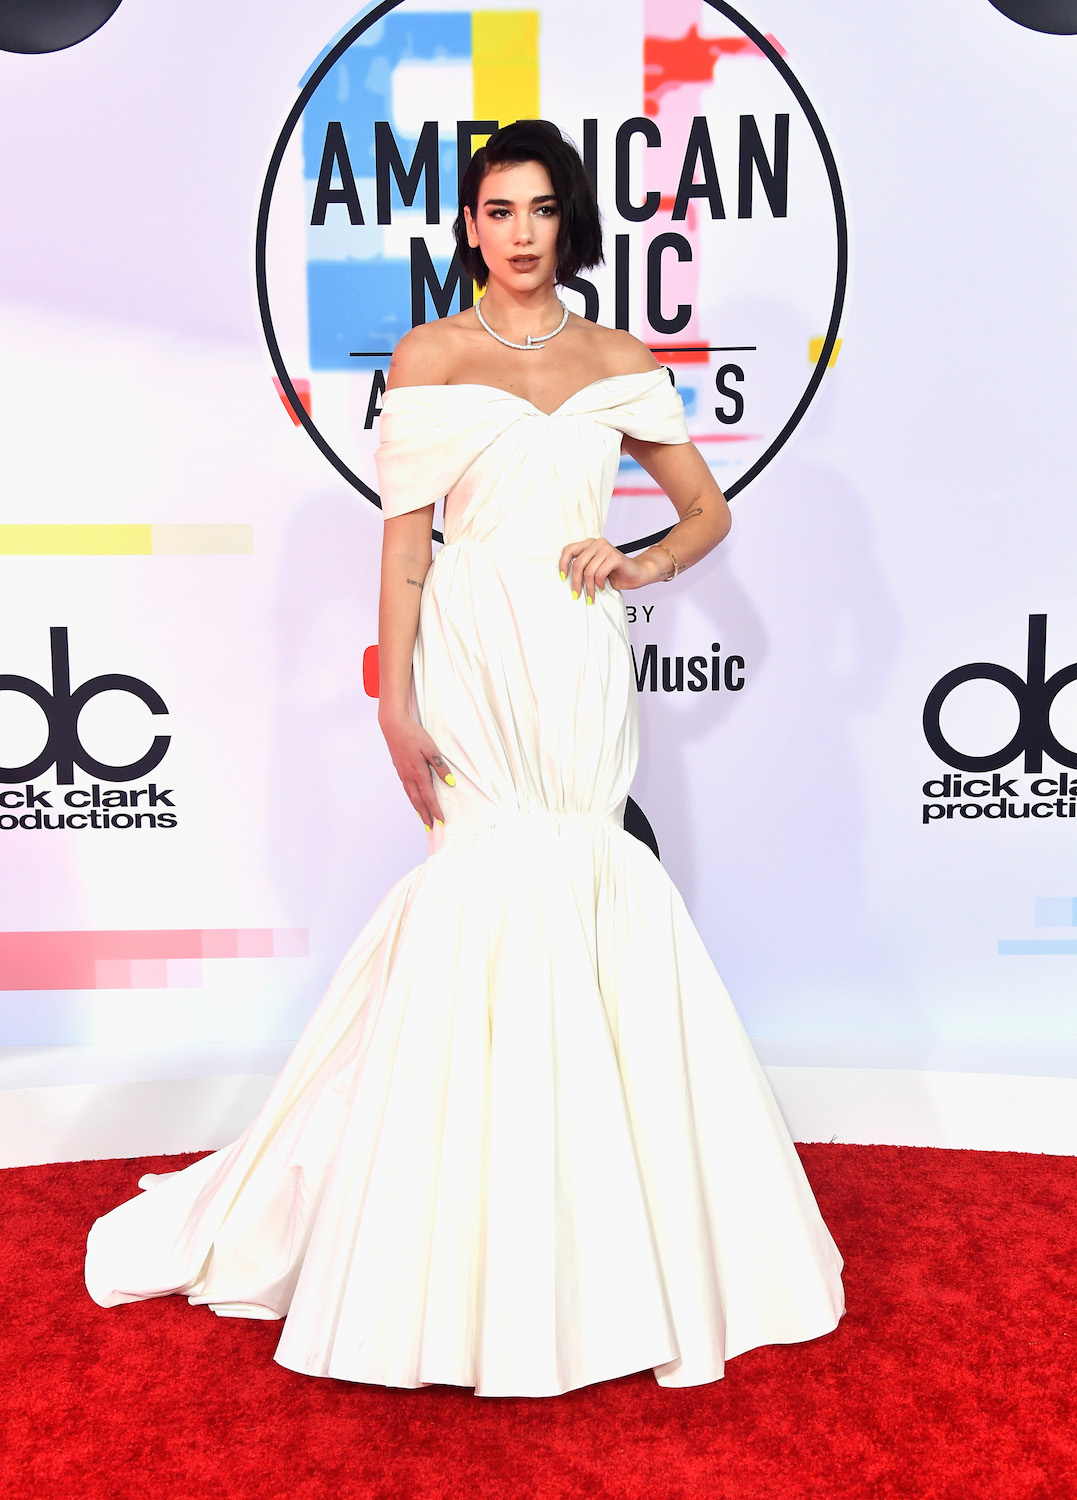 Dua Lipa attends the 2018 American Music Awards at Microsoft Theater on October 9, 2018 in Los Angeles, California.